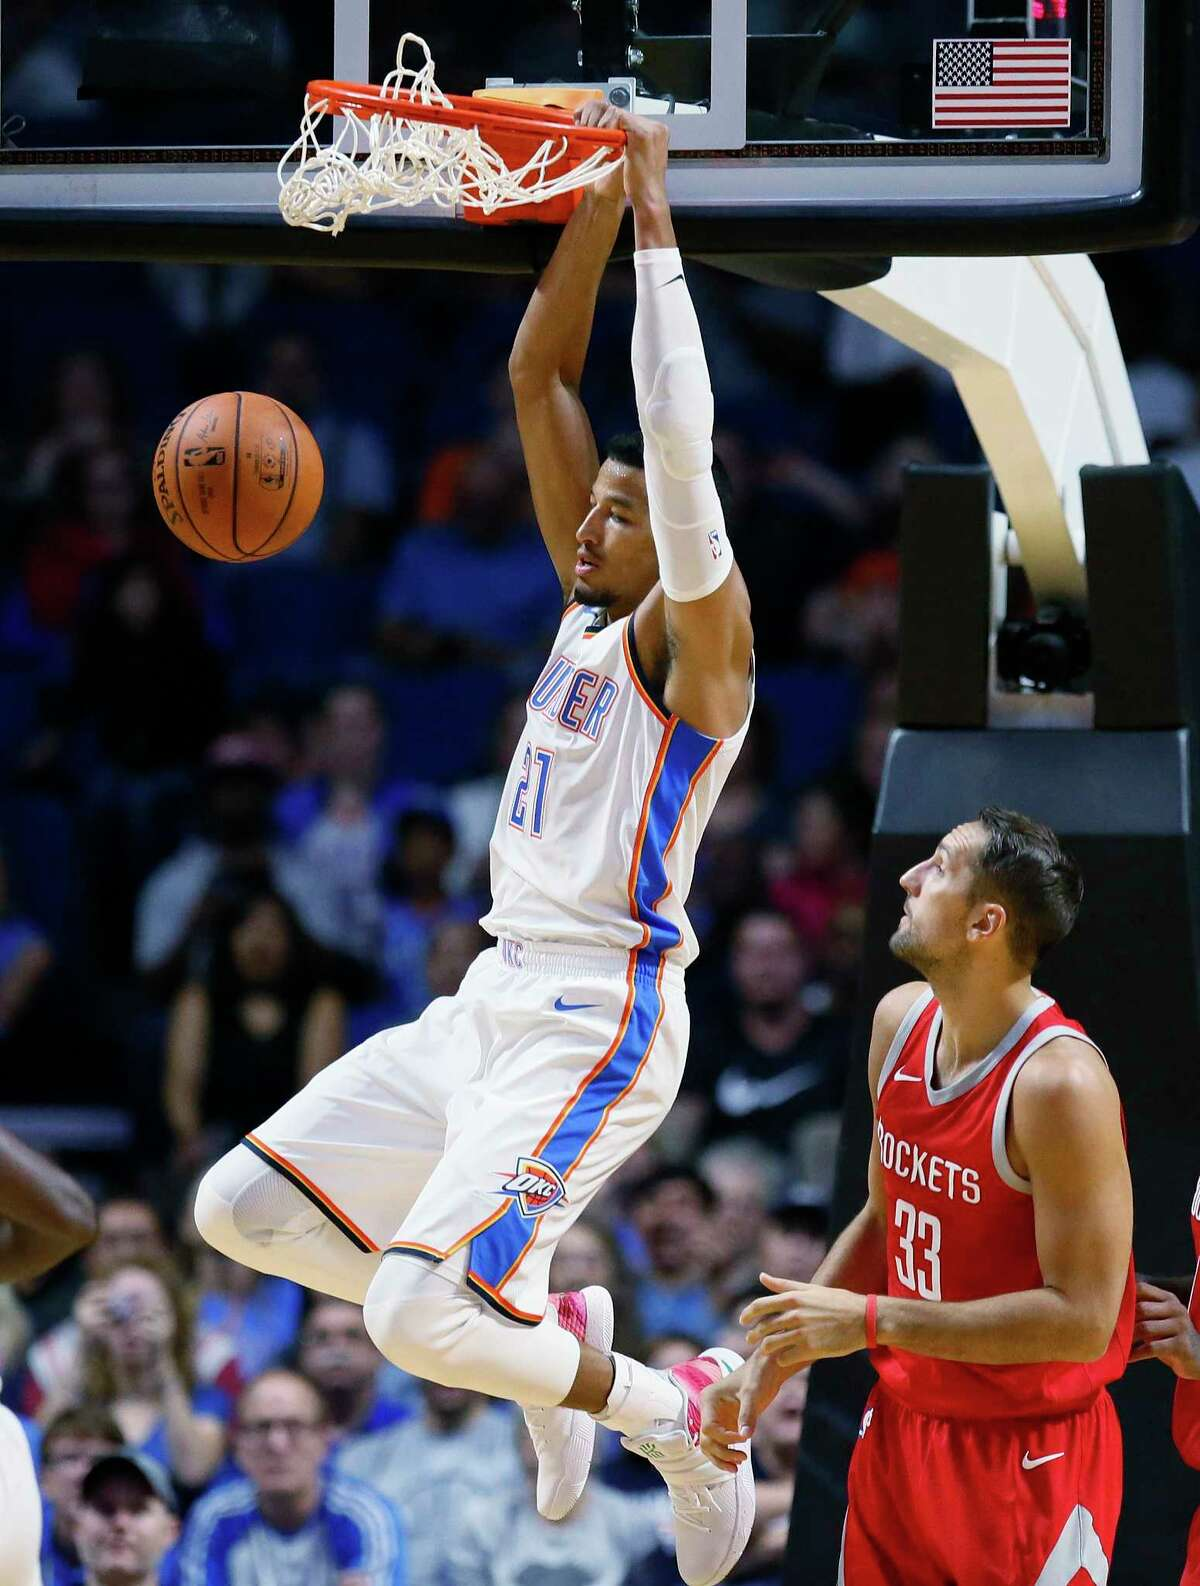 Oklahoma City Thunder guard Andre Roberson (21) hangs from the basket in front of Houston Rockets forward Ryan Anderson (33) during the first quarter of an NBA preseason basketball game in Tulsa, Okla., Tuesday, Oct. 3, 2017. (AP Photo/Sue Ogrocki)